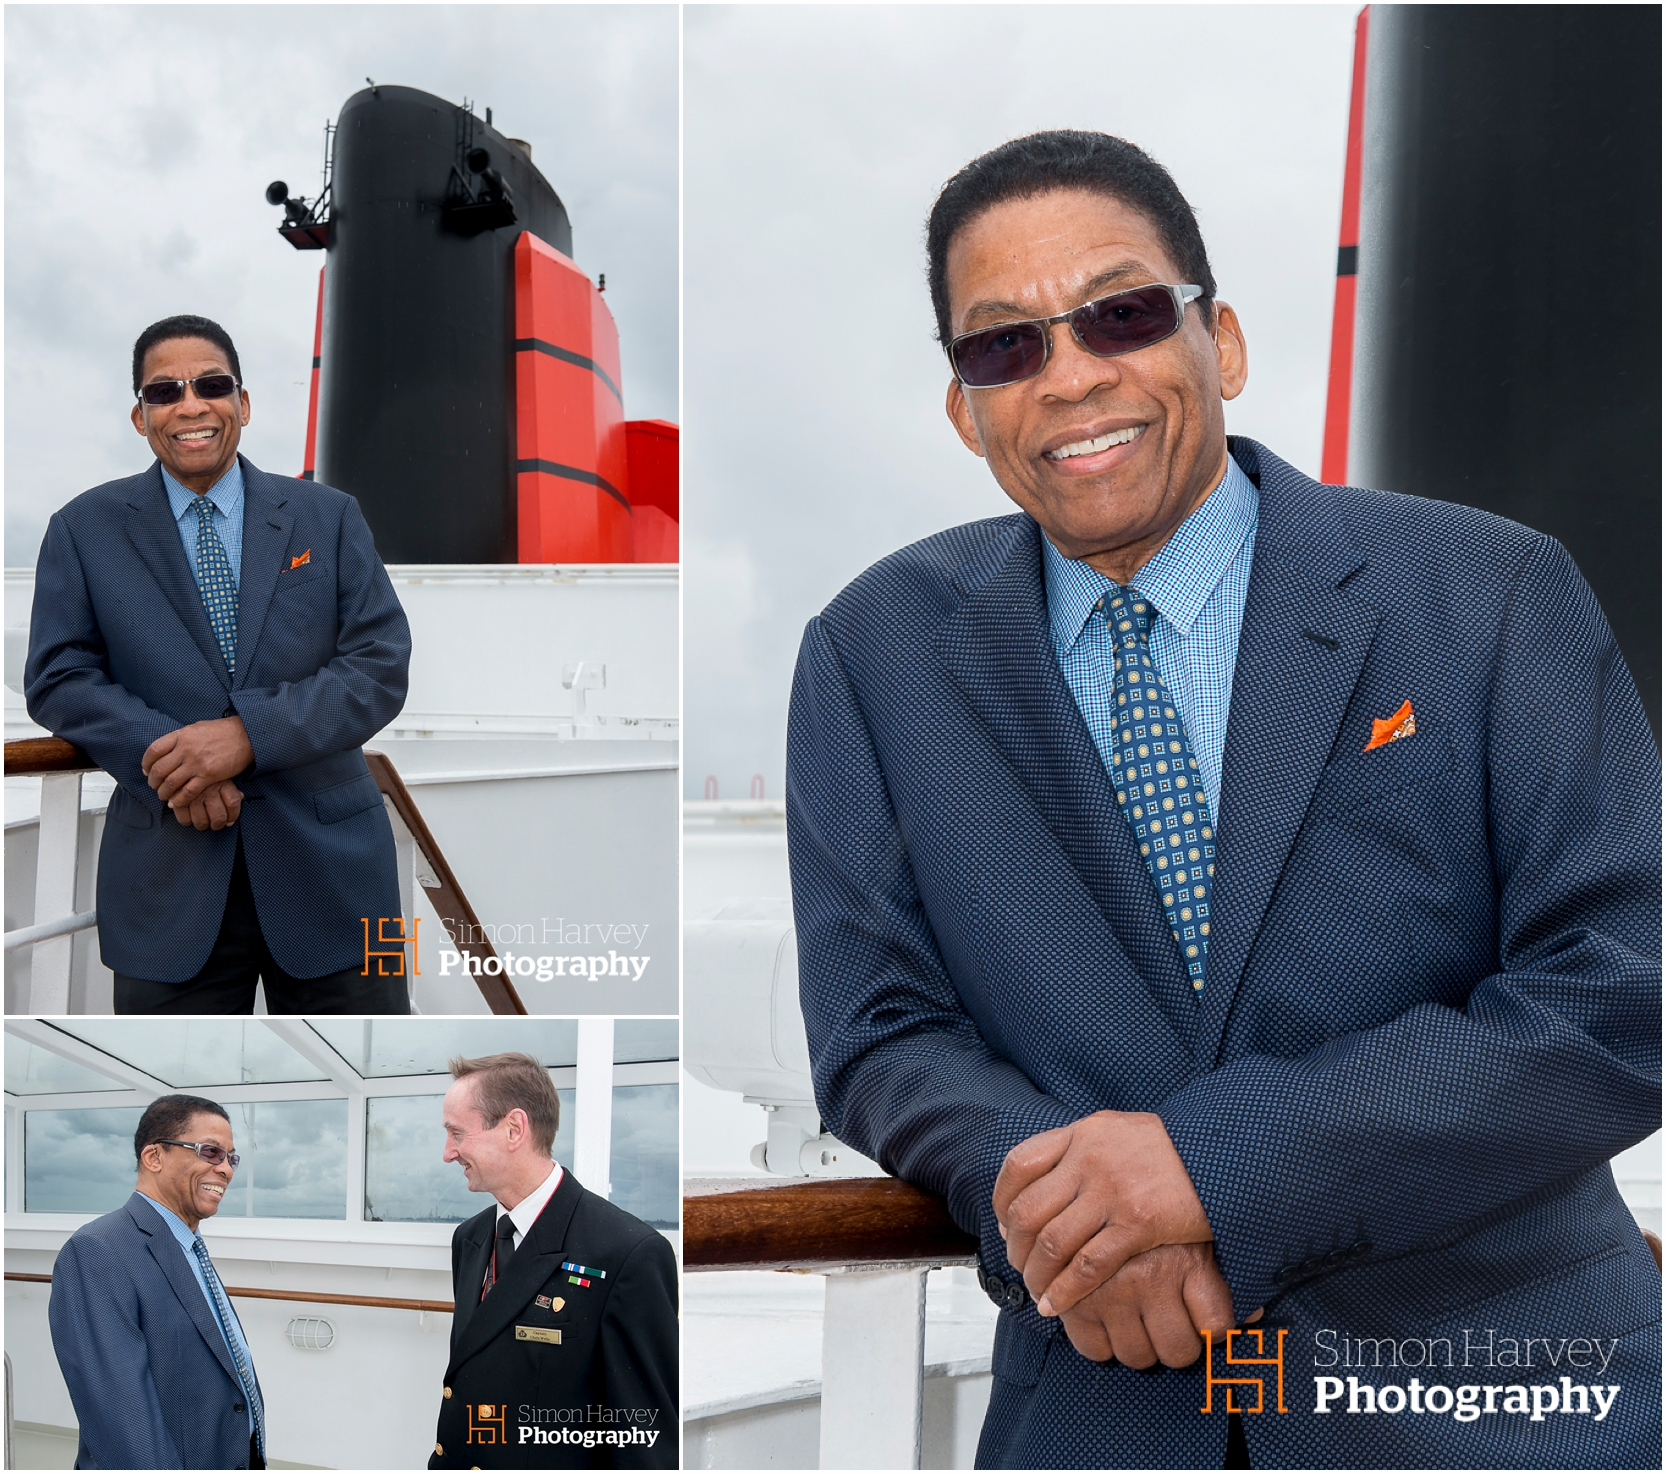 Herbie Hancock setting sail aboard the Cunard QMll